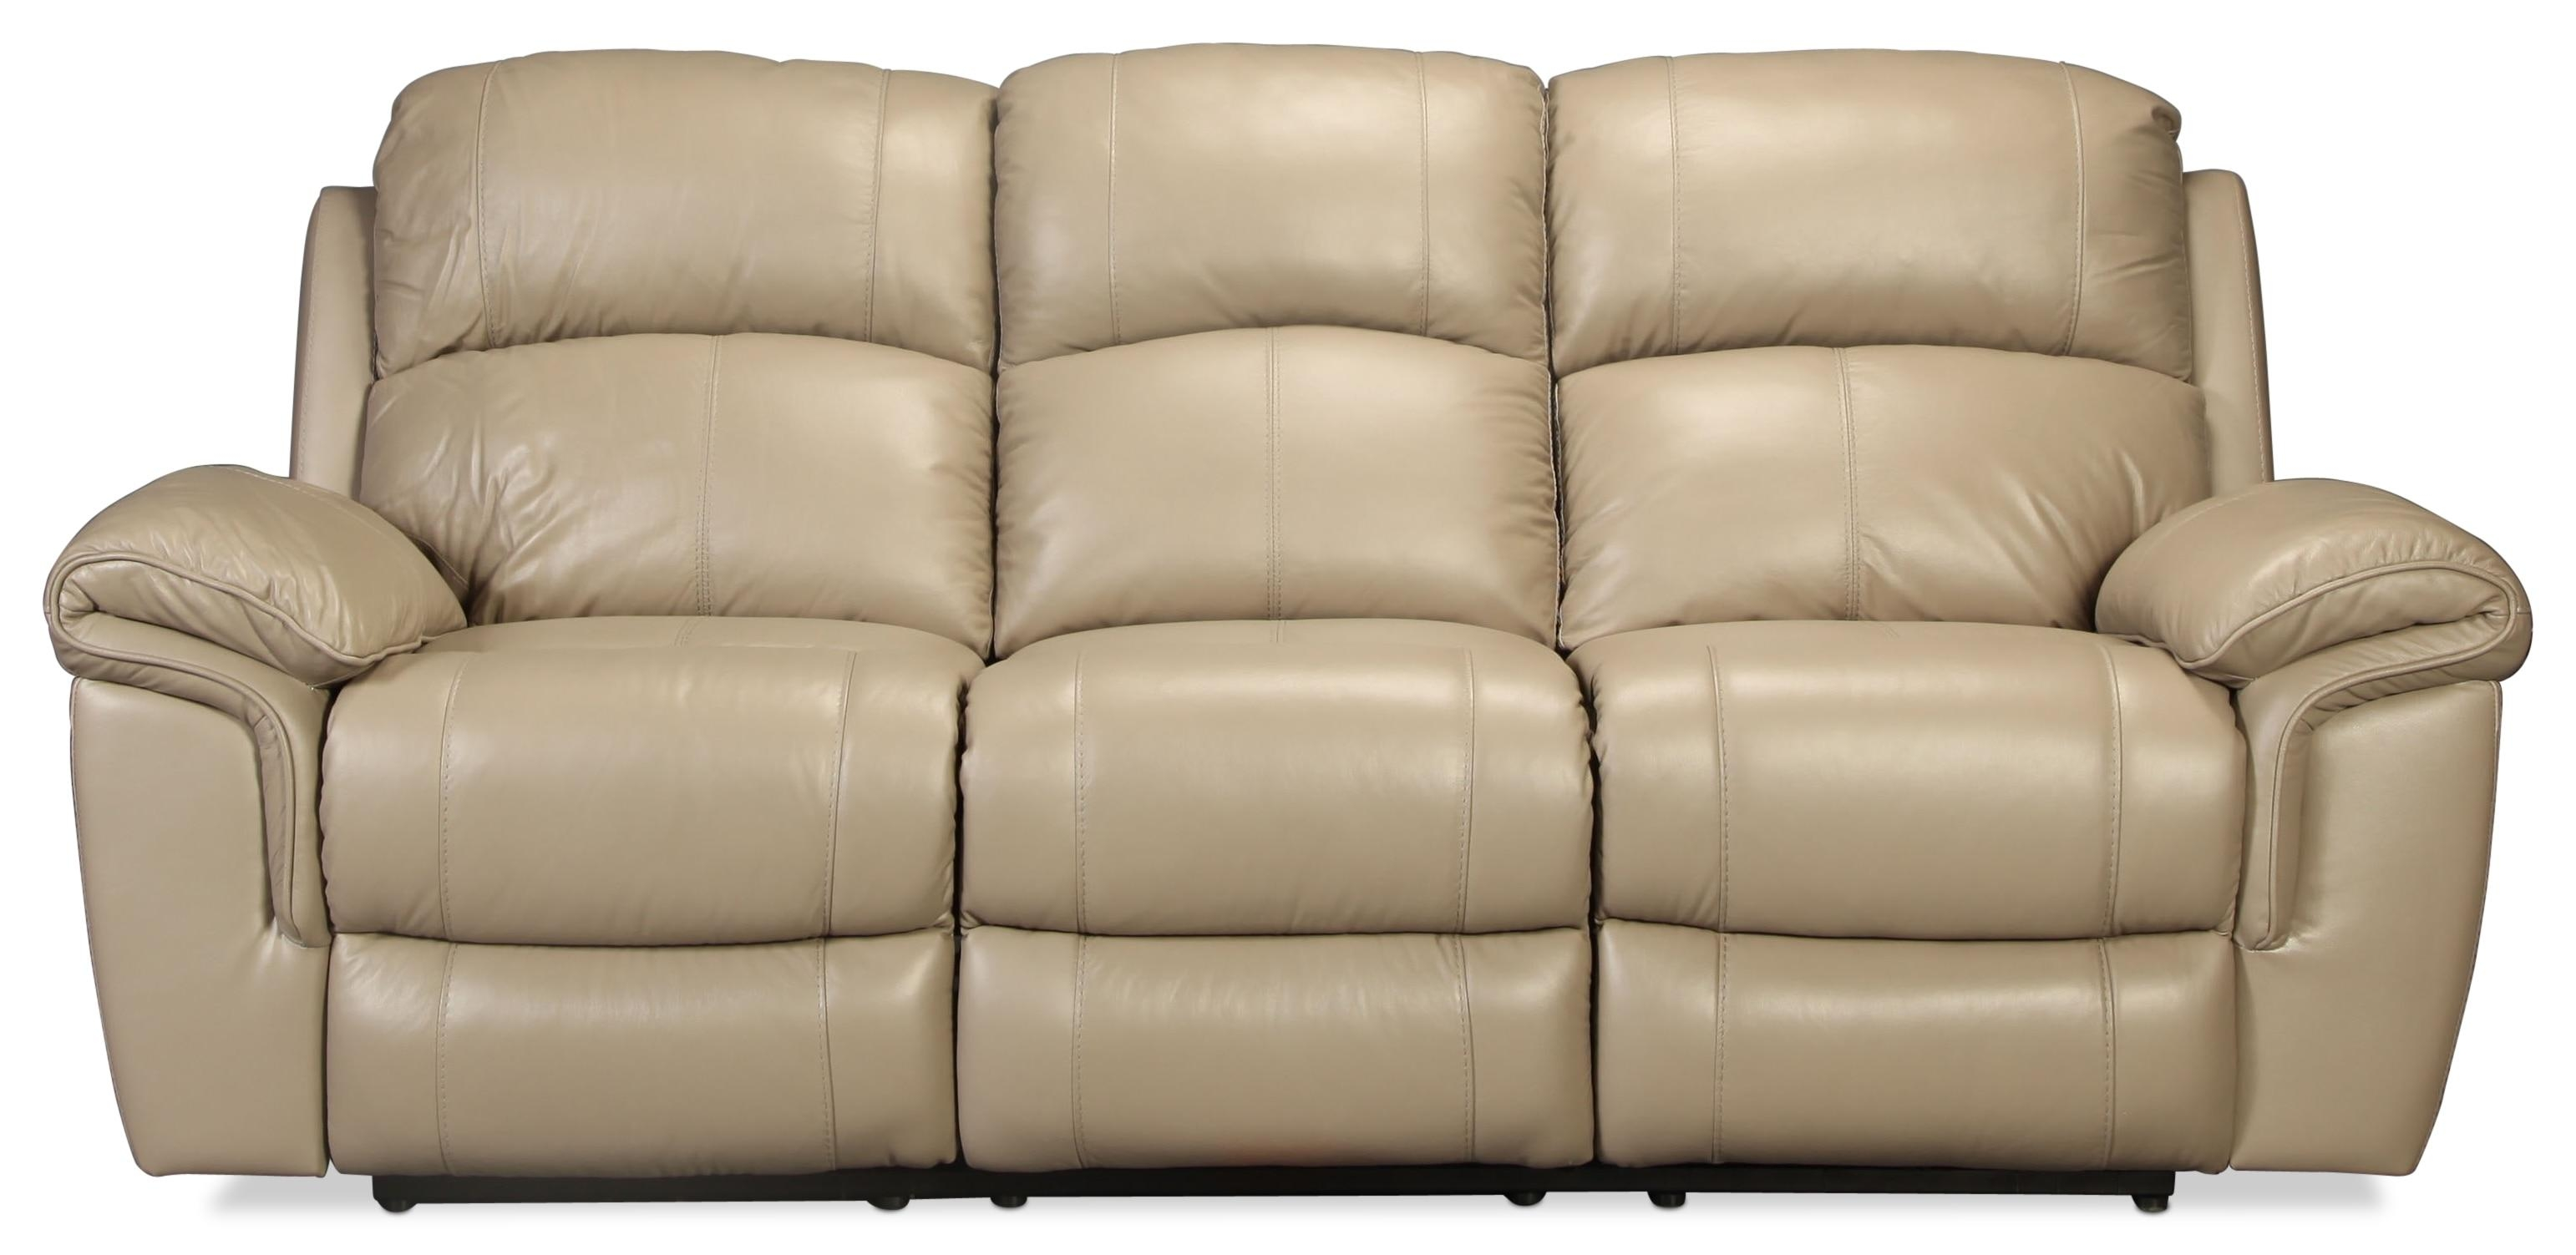 Braxton Power Reclining Sofa | Levin Furniture Within Braxton Sofa (View 17 of 20)